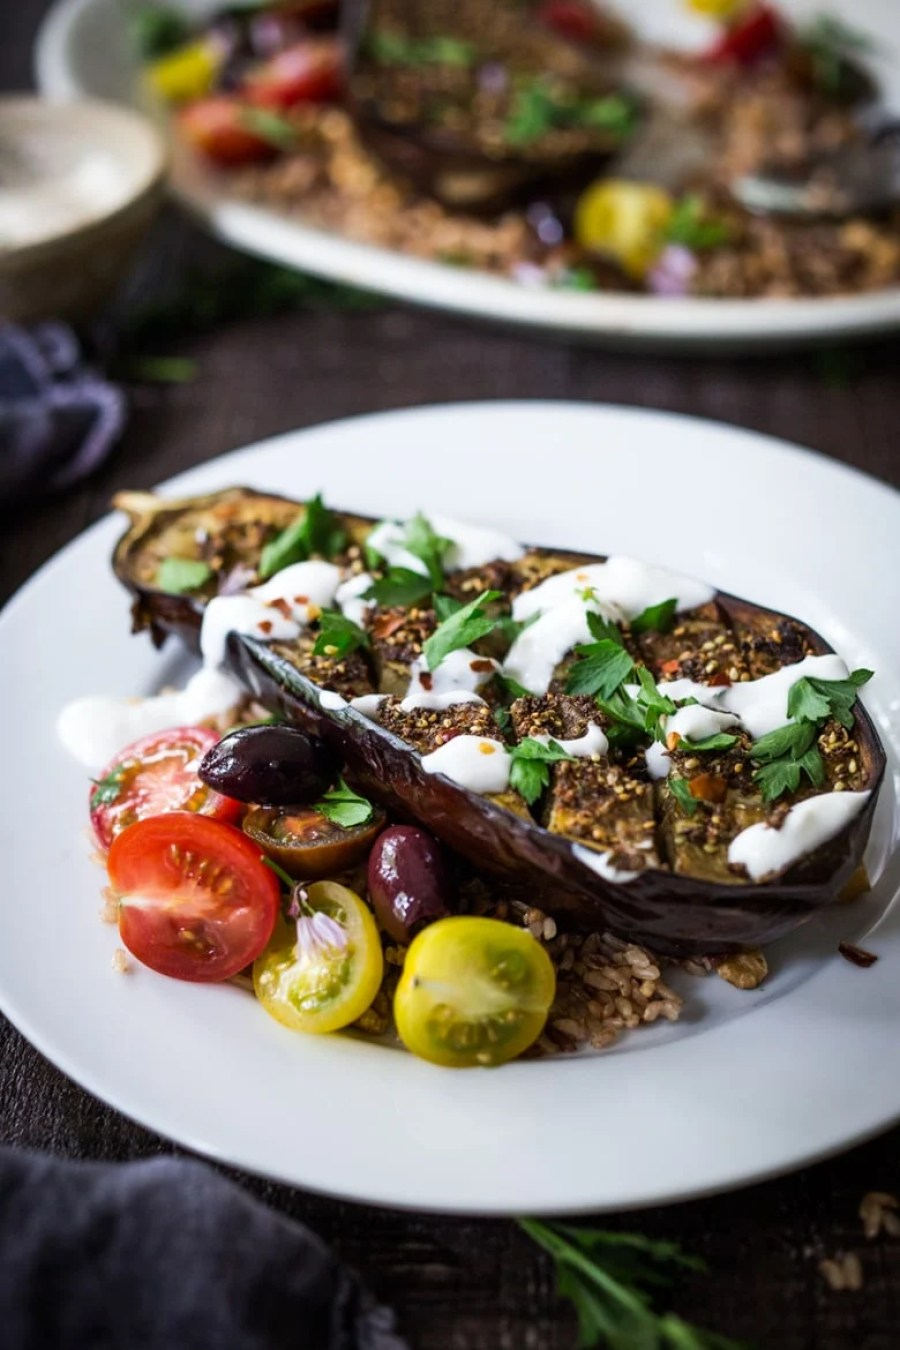 Crosshatched Zataar Roasted Eggplant served over rice or grains with lemony tahini sauce, plain yogurt or tzatzki sauce. Vegan, Gluten-free! | www.feastingathome.com